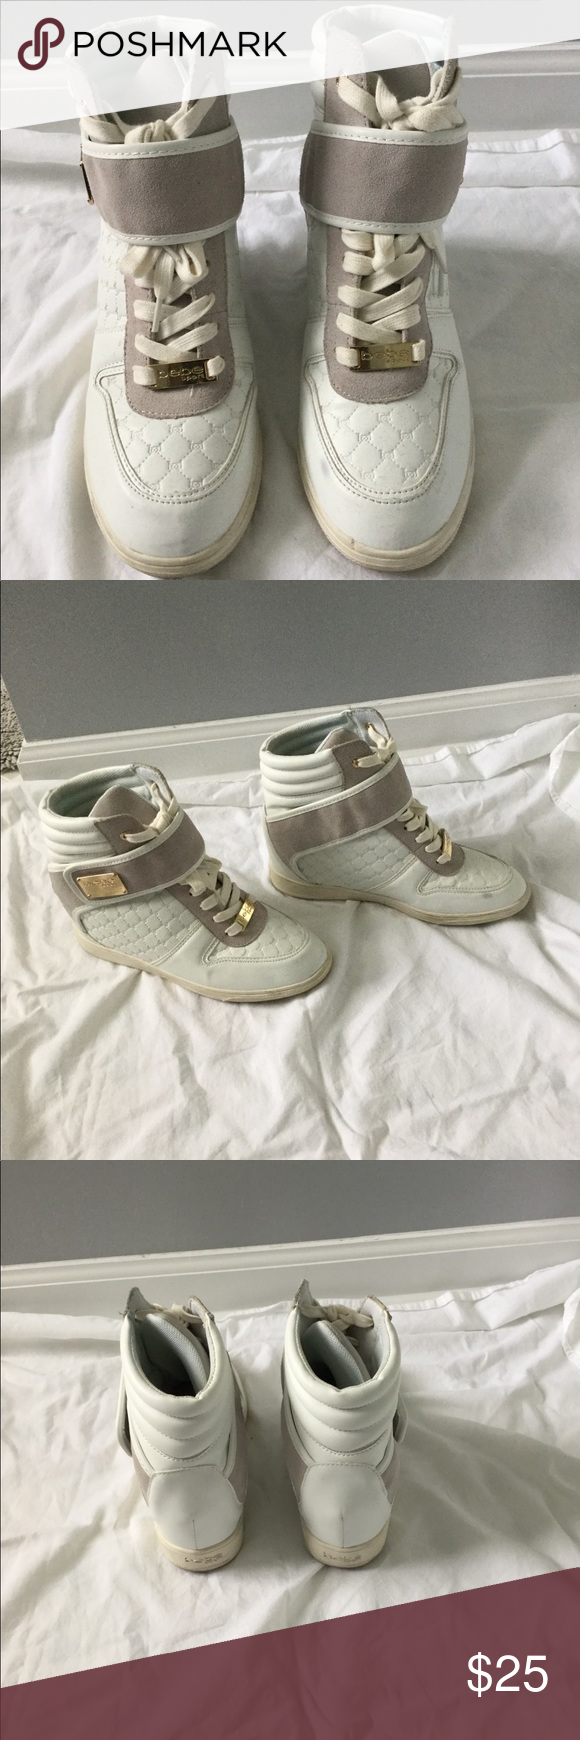 38a026e3f9e Bebe Colby Wedge Sneakers Keep your look fresh under the cloudy days in  this Bebe Colby Wedge Sneaker. These are soooo comfortable! bebe Shoes  Sneakers